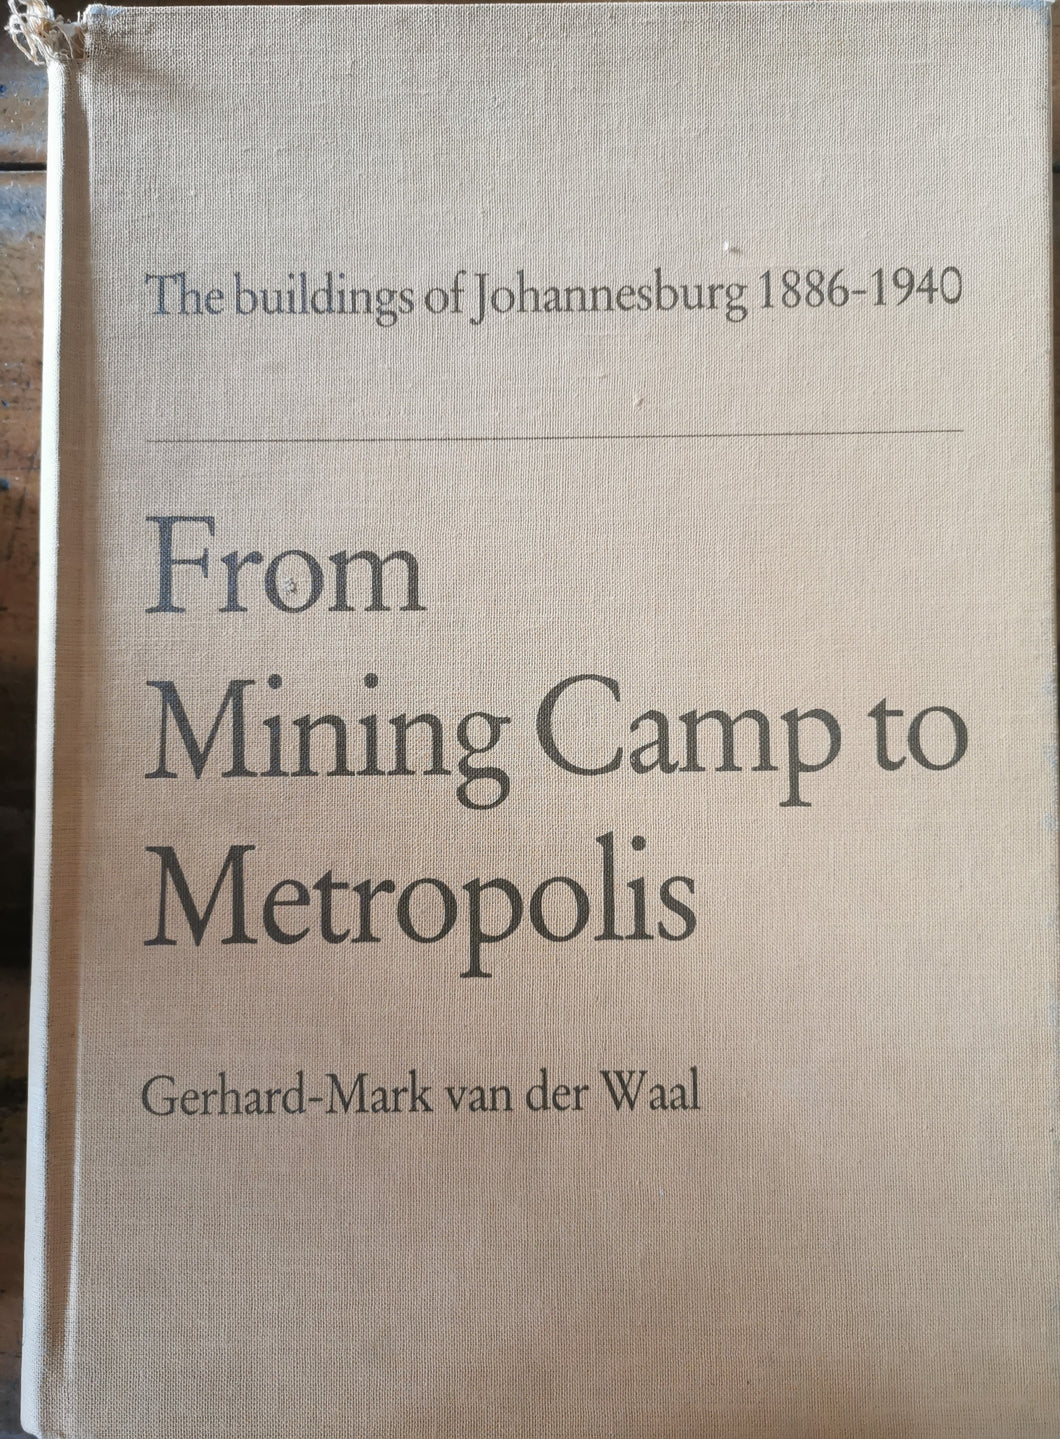 From Mining Camp to Metropolis: The Buildings of Johannesburg 1886-1940